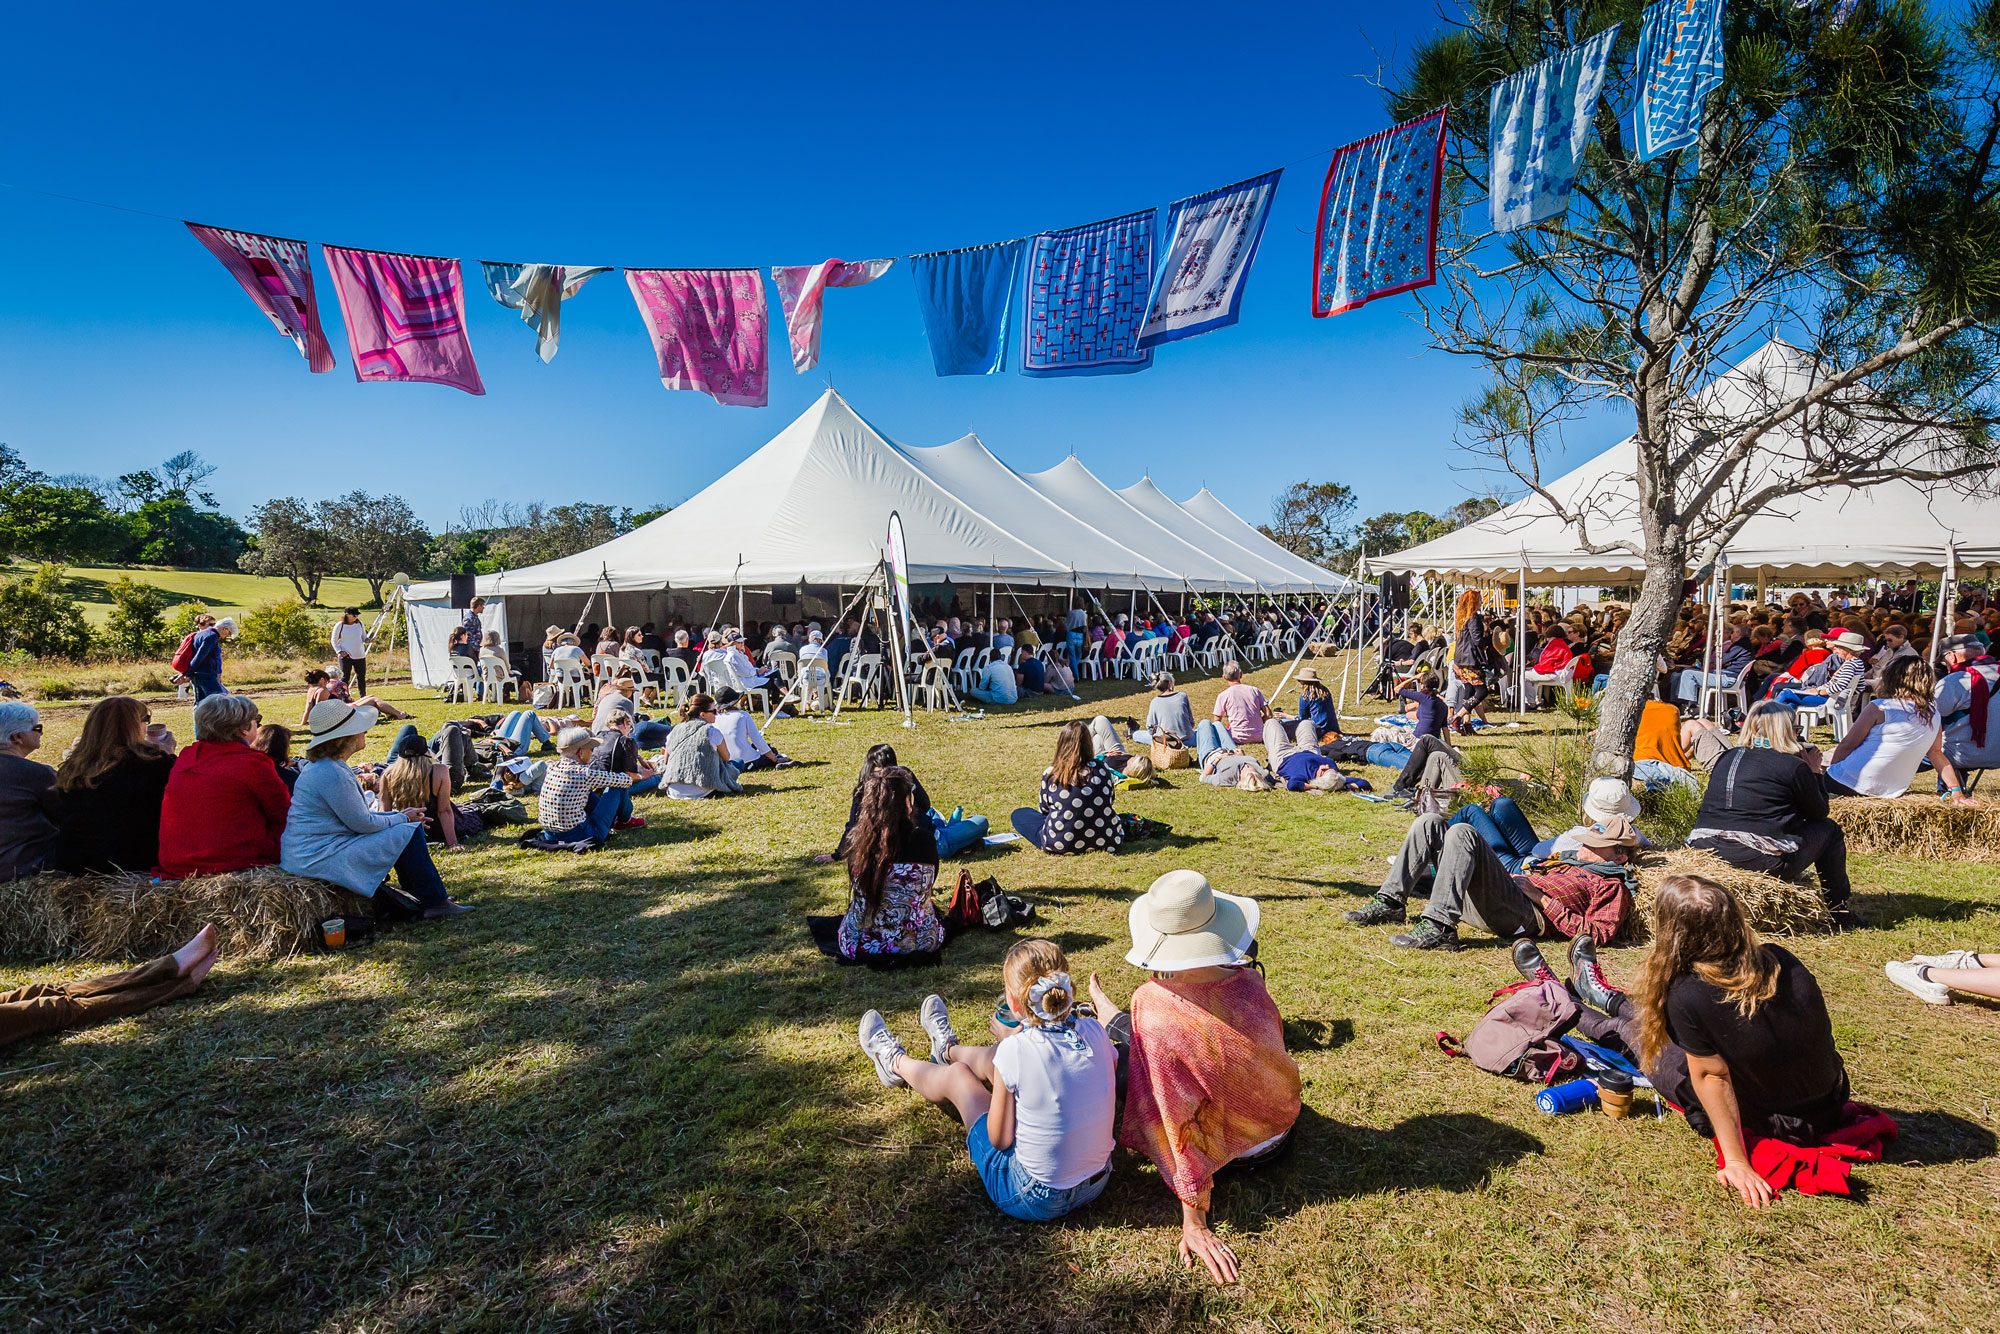 https://byronwritersfestival.com/wp-content/uploads/2019/08/ByronWF2019_Audiences10.jpg